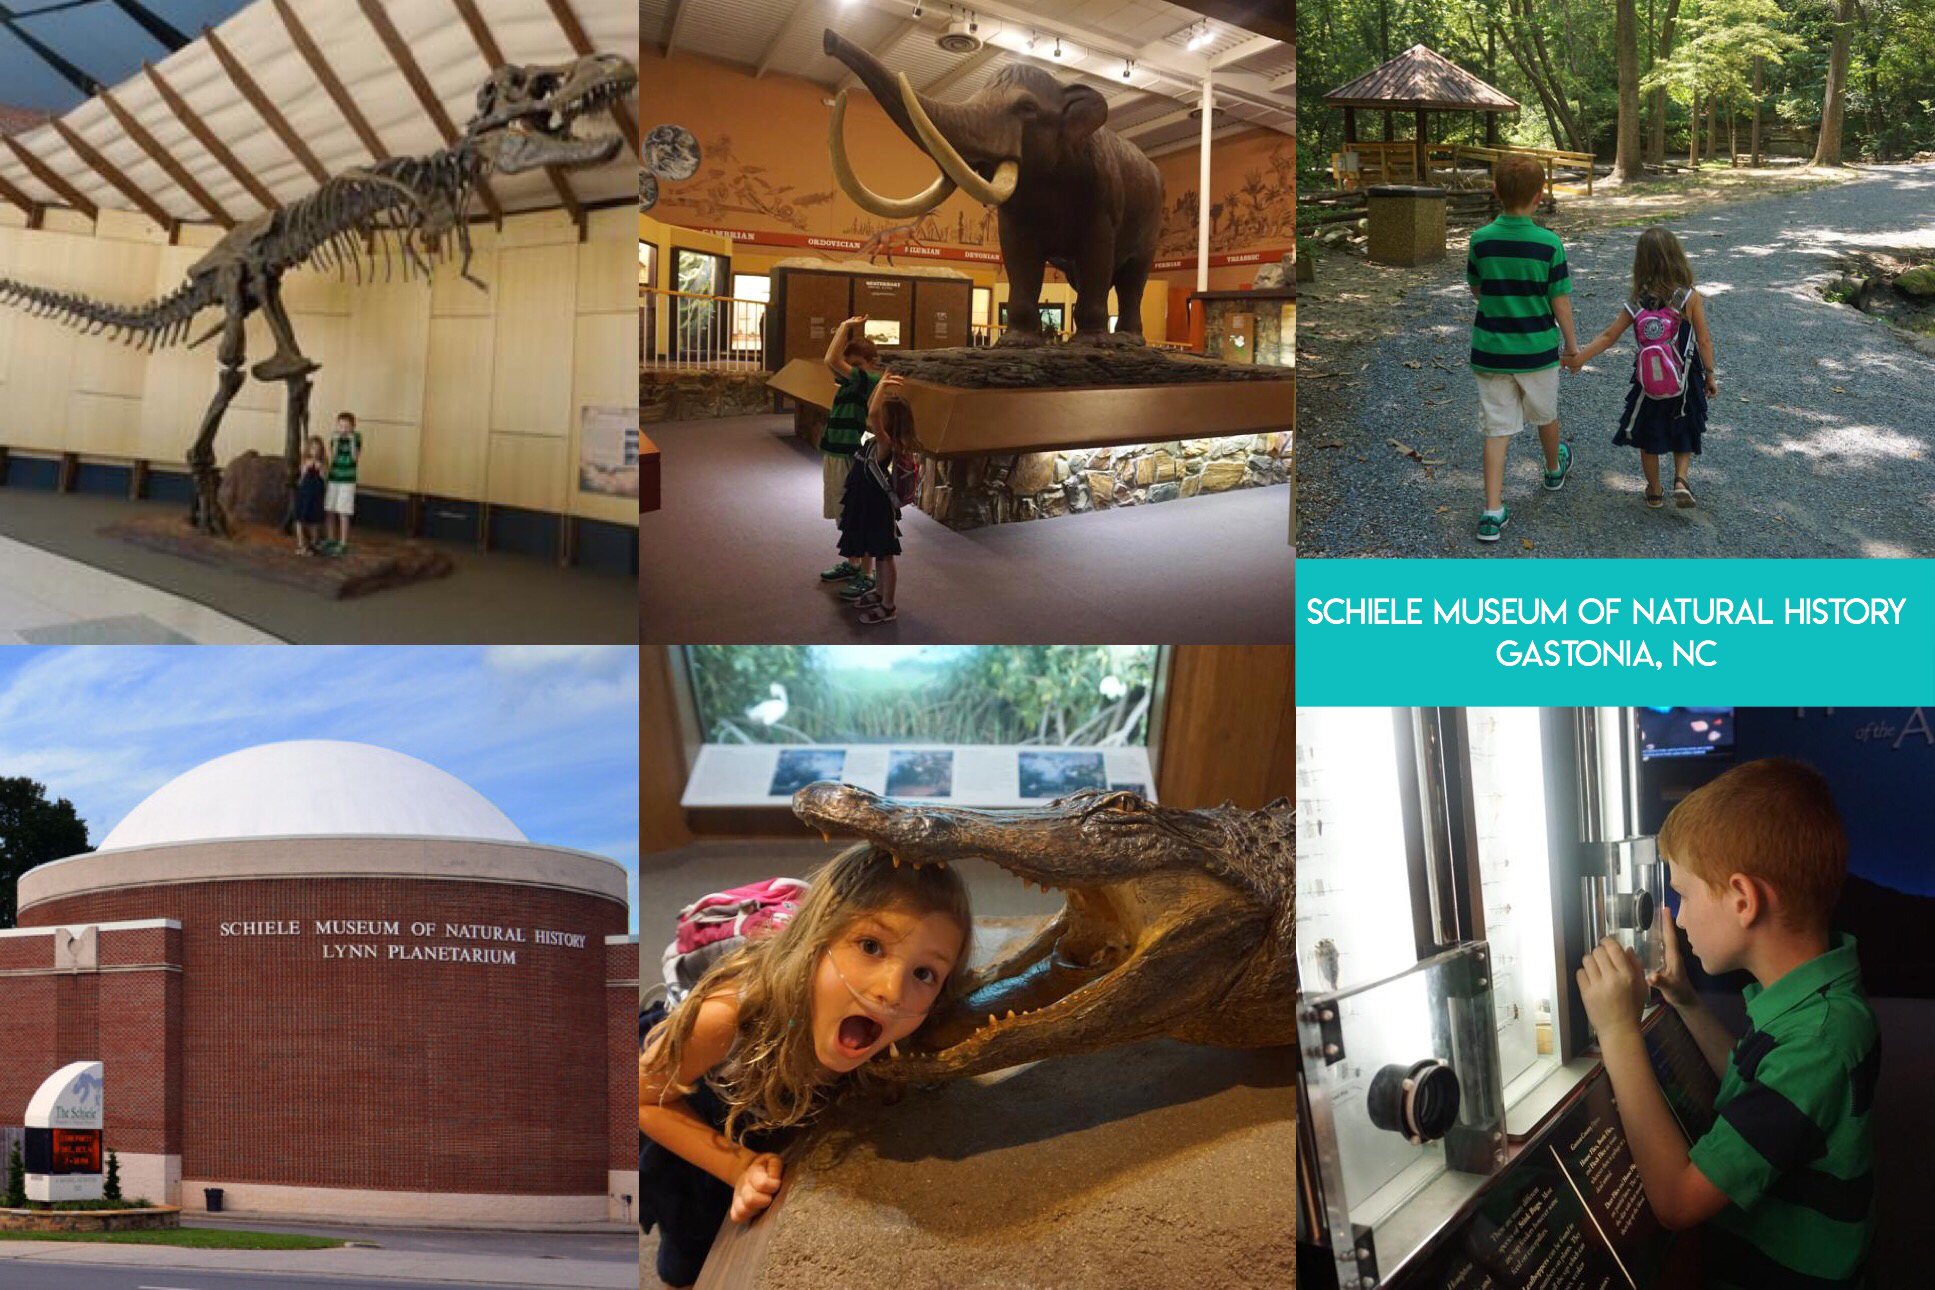 Learn the secret to saving thousands of dollars on visiting fun and educational places all across the nation, and even internationally, including zoos, aquariums, children's museums, and science museums with the magic of reciprocal museum membership.